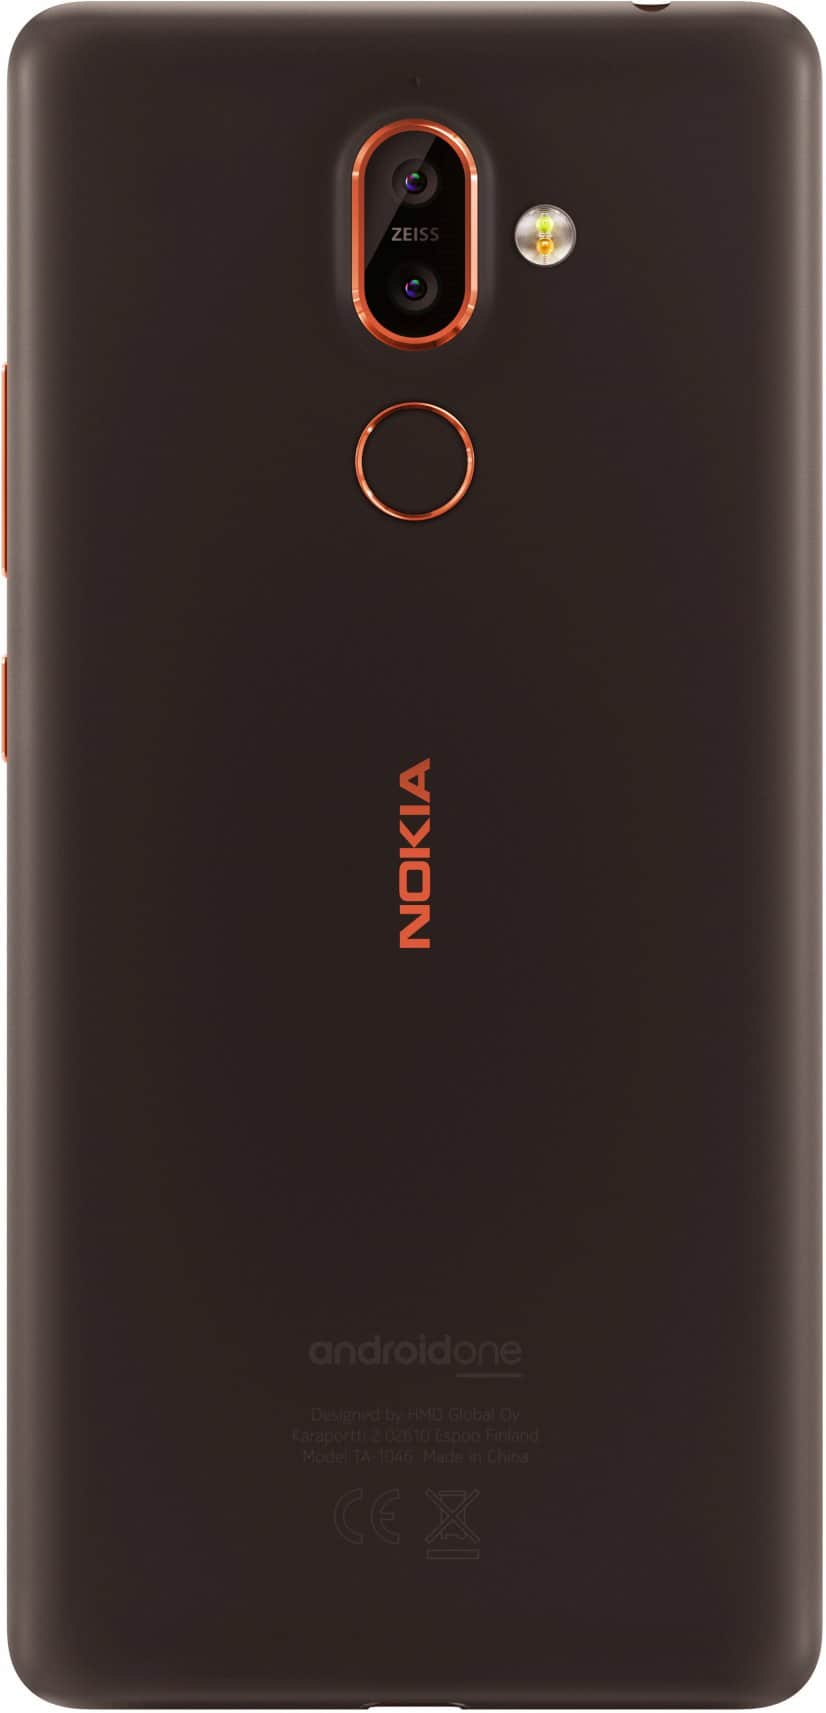 Nokia 7 Plus in Black Color